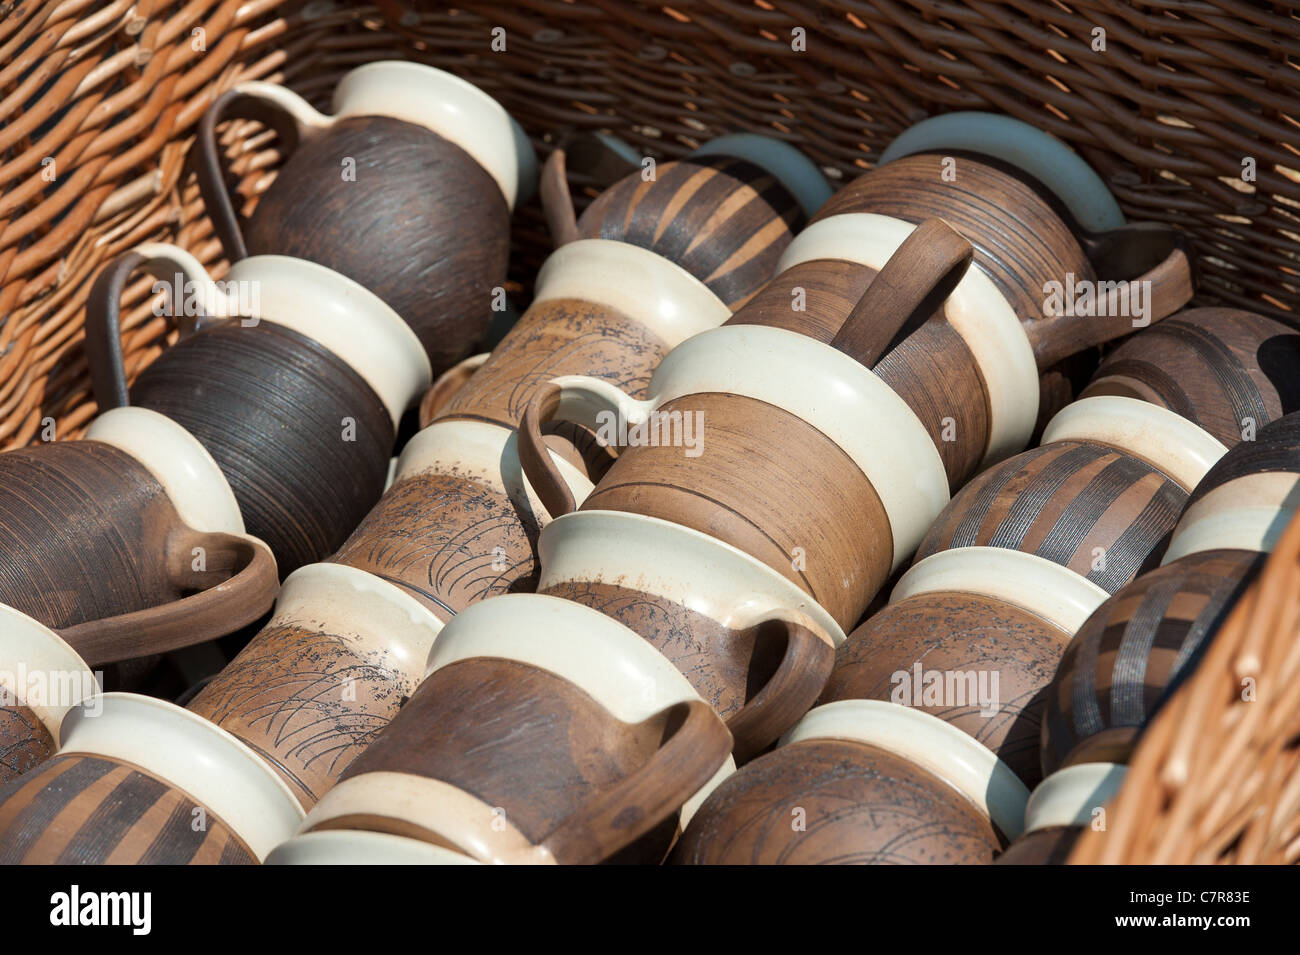 handmade pottery products in a basket sold at traditional urban market - Stock Image